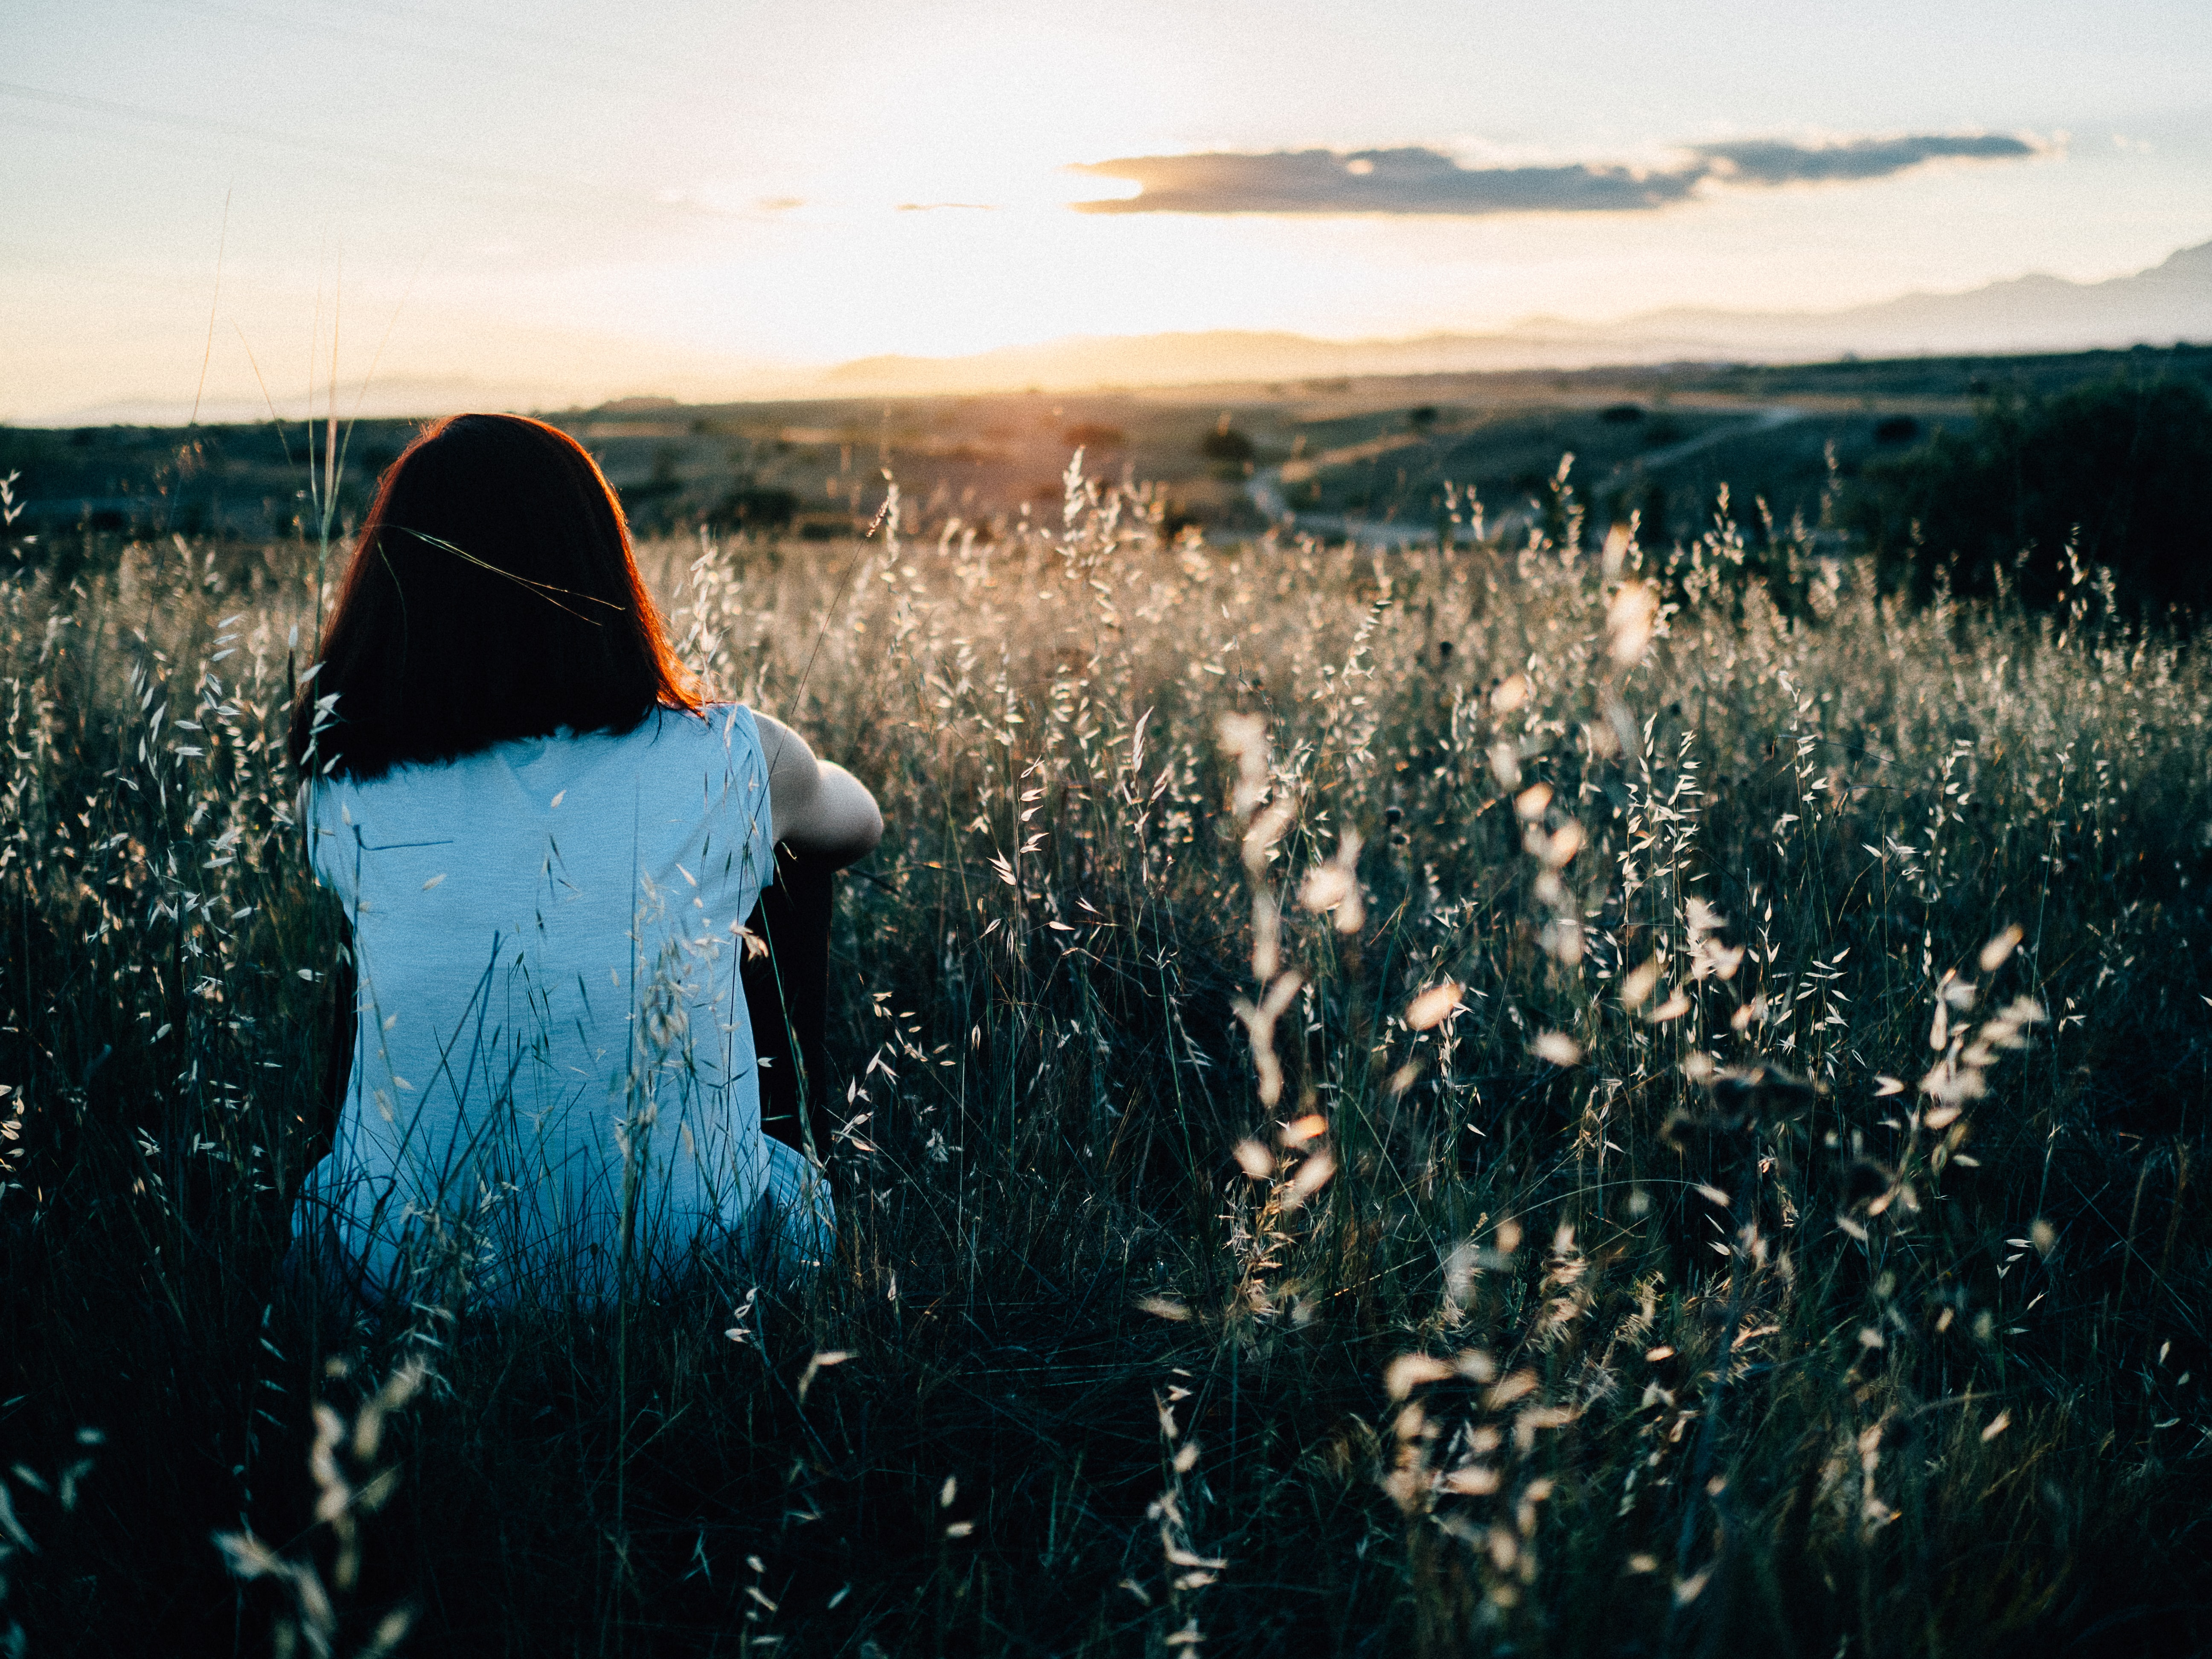 A girl sitting in a field in the countryside watching the sunset